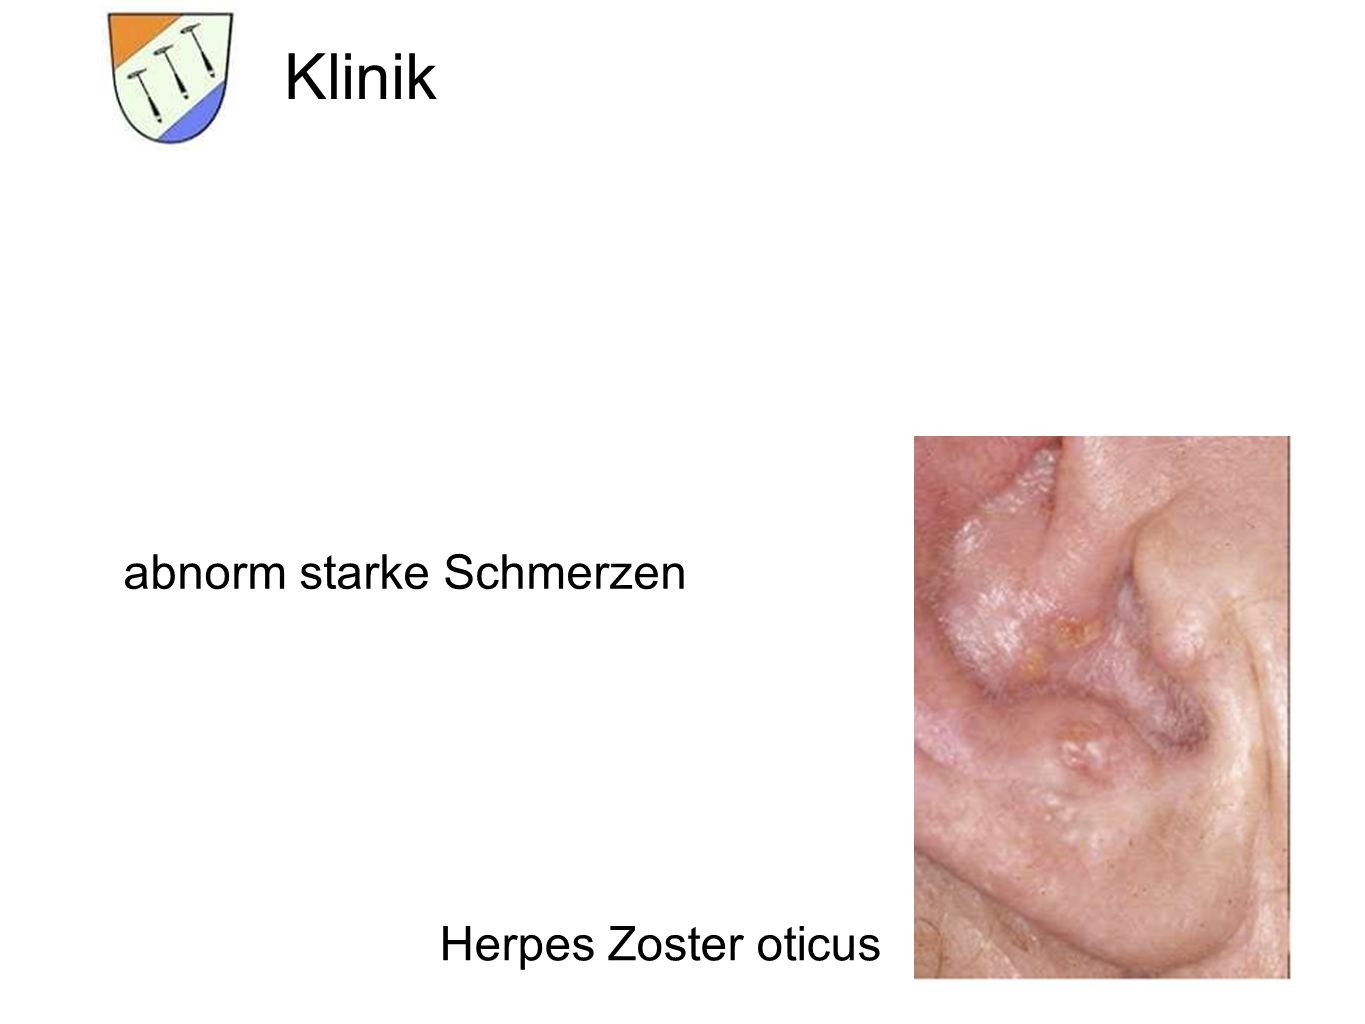 herpes zoster ncp 1 the varicella zoster virus can hide for years in the dorsal root _____ 2 a bundle of impulse-carrying fibers that connect the brain and spinal cord withother.